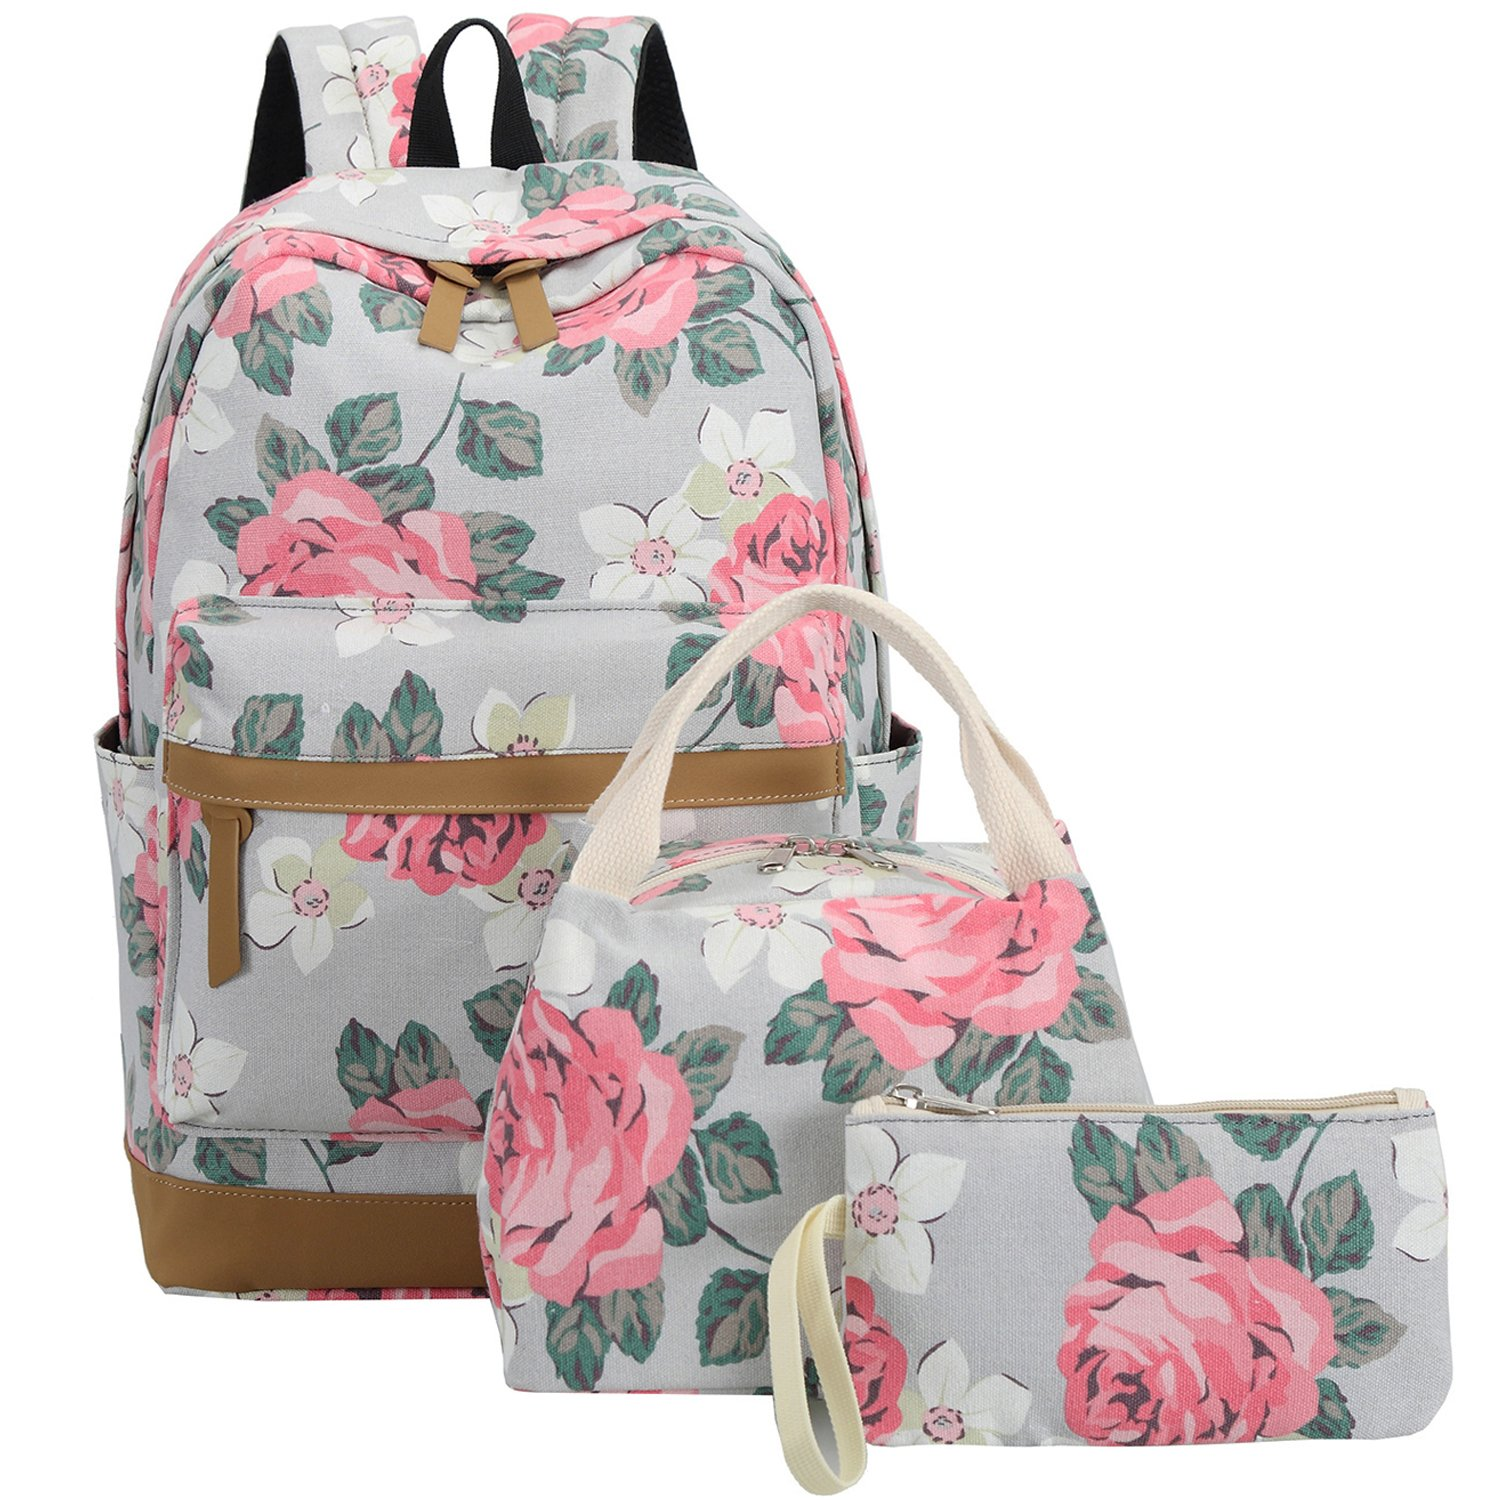 15ee5886edea BLUBOON School Backpack Set Canvas Teen Girls Bookbags 15 inches Laptop  Backpack Kids Lunch Tote Bag Clutch Purse (Big Floral - Gray)